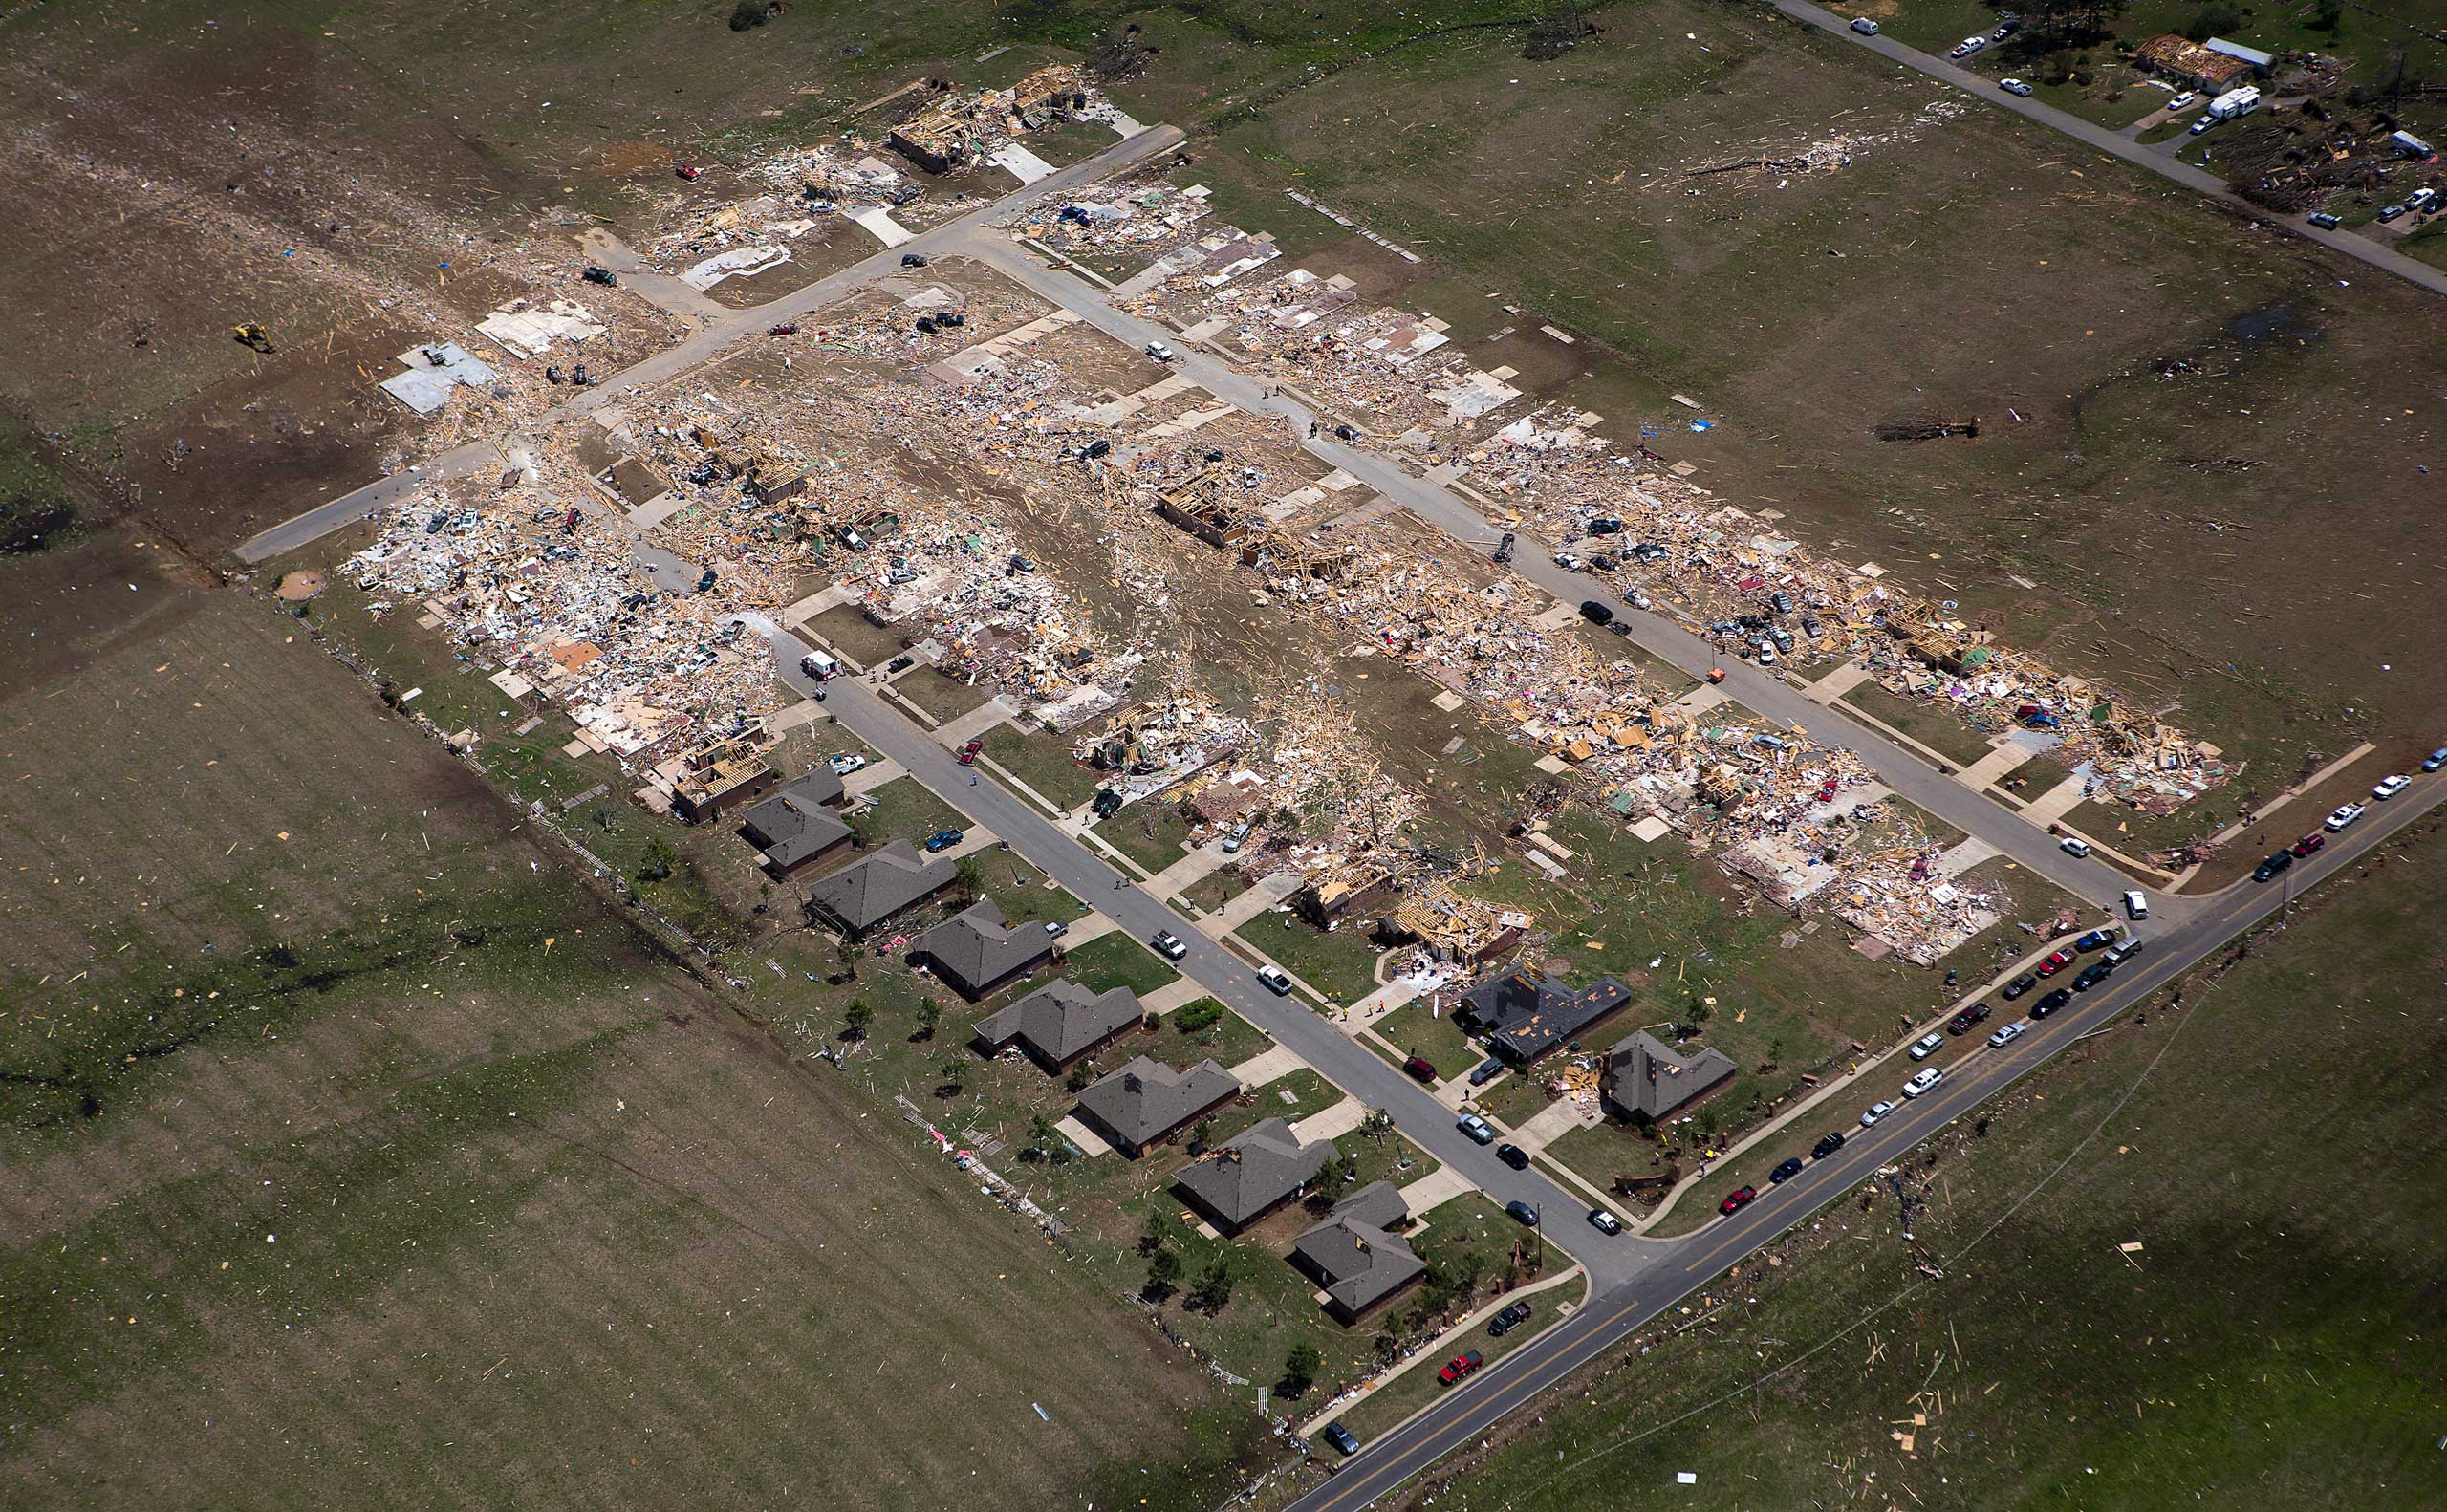 <b>Arkansas Tornado</b> Aerial view of the central town after a tornado hit Vilonia, Ark., April 28, 2014.